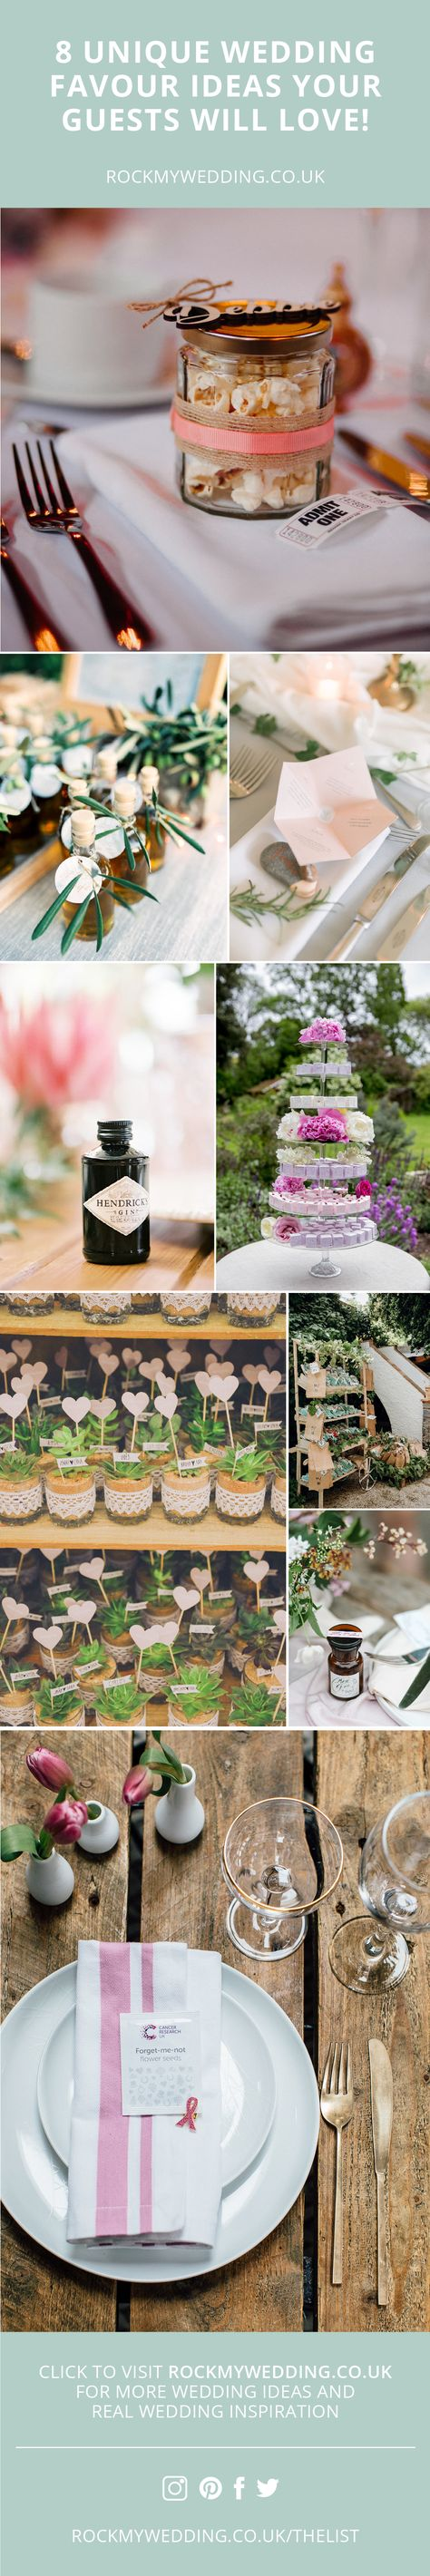 8 Unique Wedding Favour Ideas Your Guests Will Love! | Wedding Favours | Wedding Favors | Wedding Favour Ideas | Wedding Planning | #weddingfavours #weddingfavors #weddingfavourideas #Weddingplanning